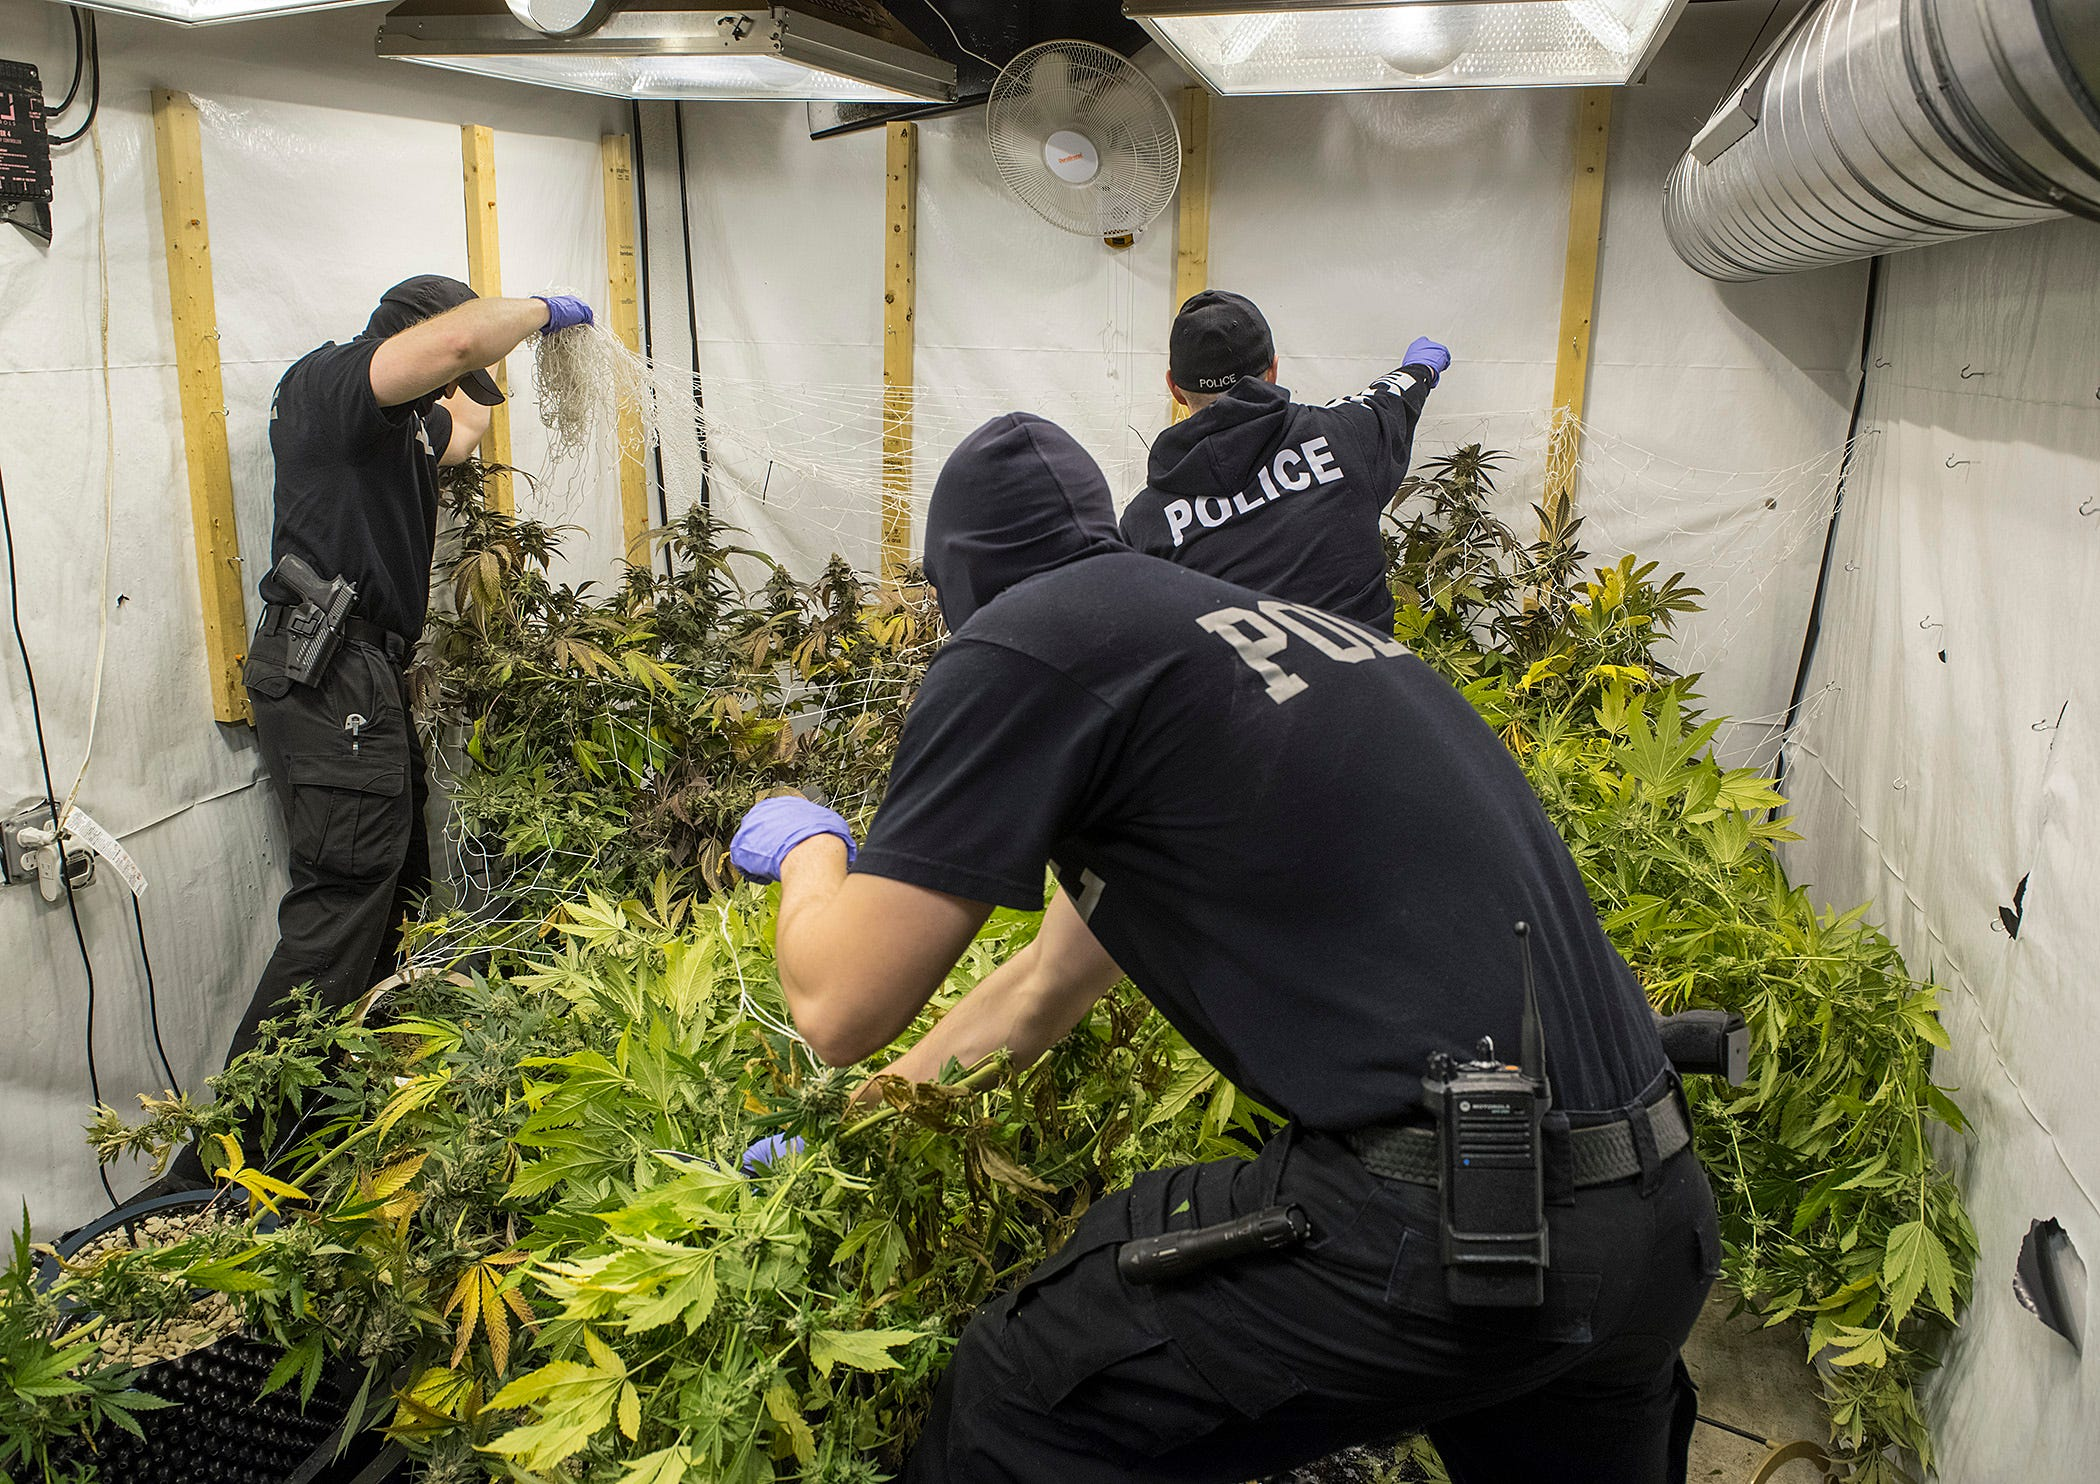 Police raid uncovers dozens of pot plants, grow operation in Livonia